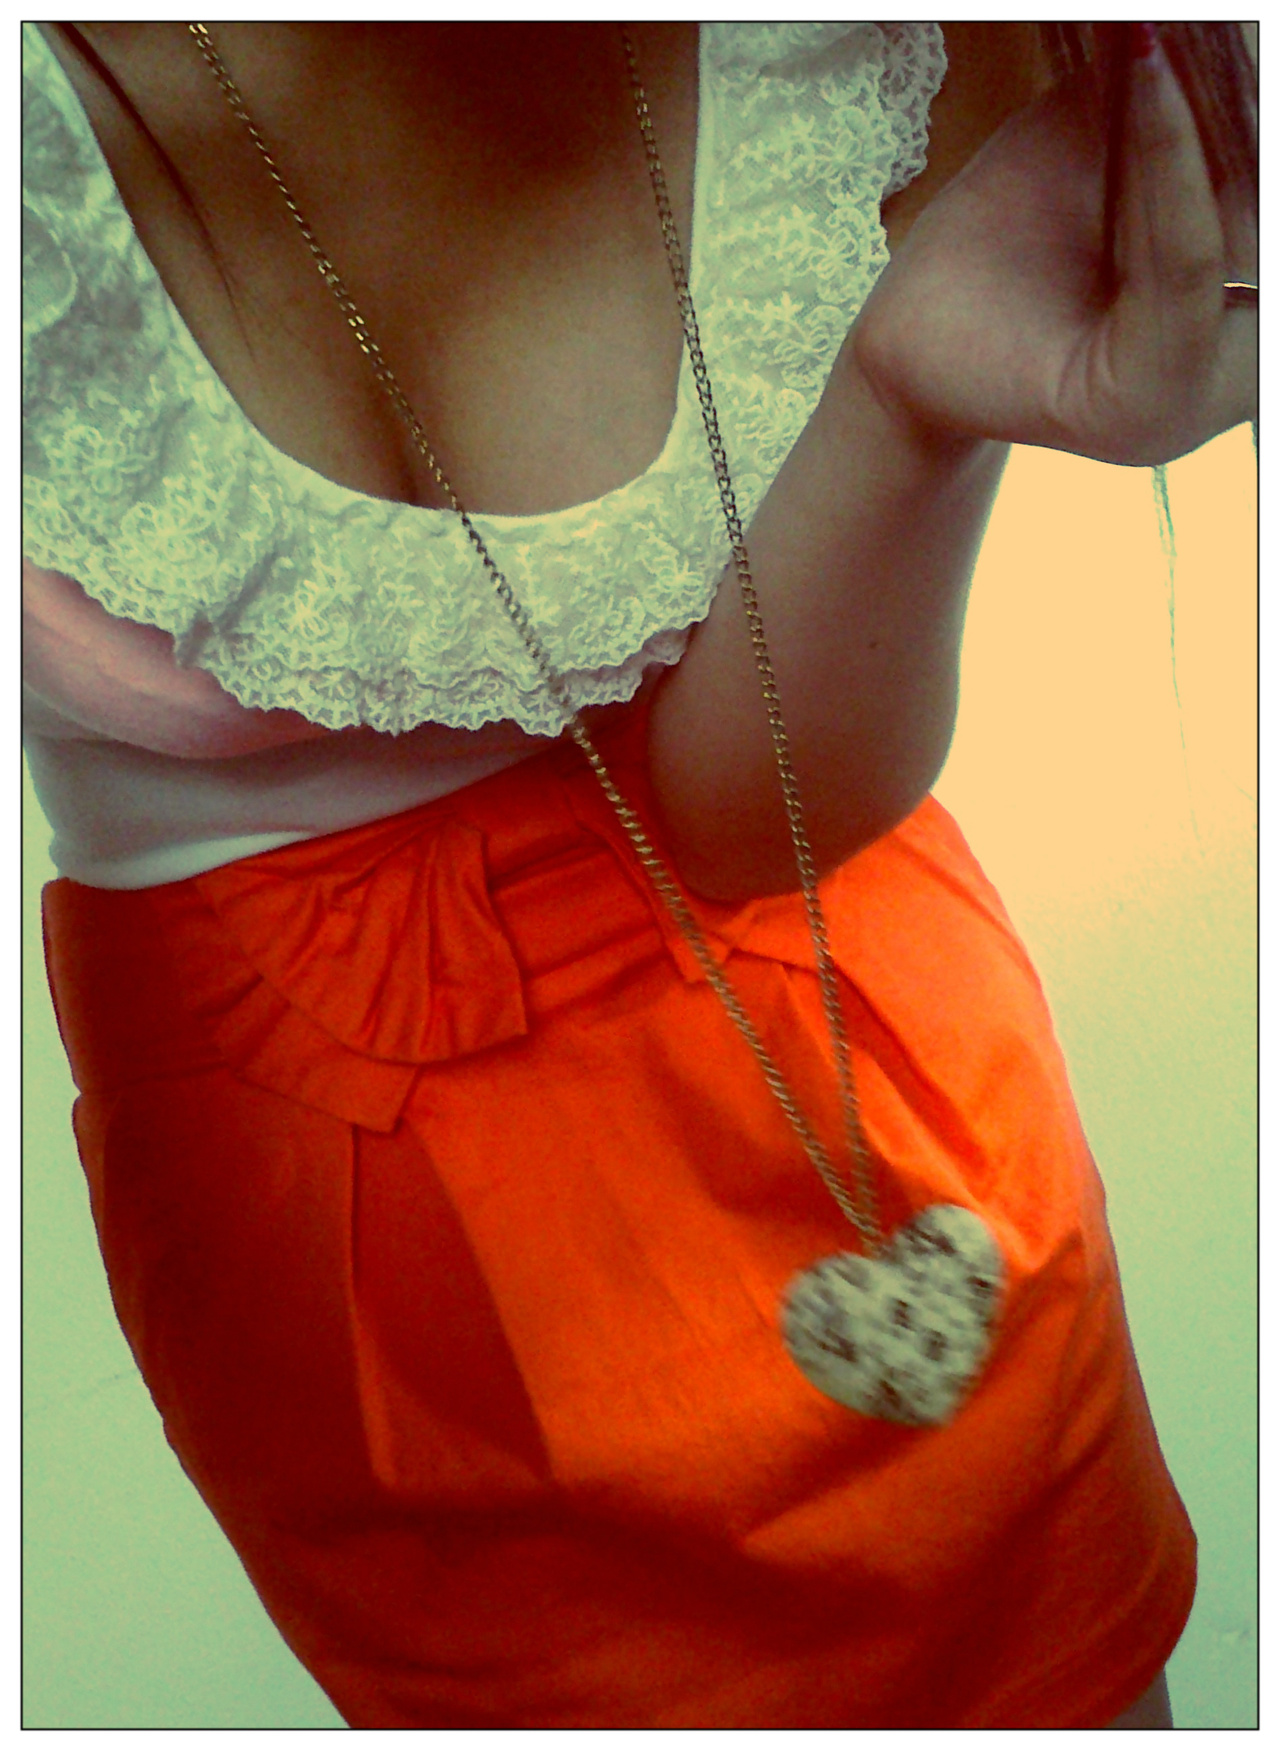 lace, orange, skirt, neclace, bow